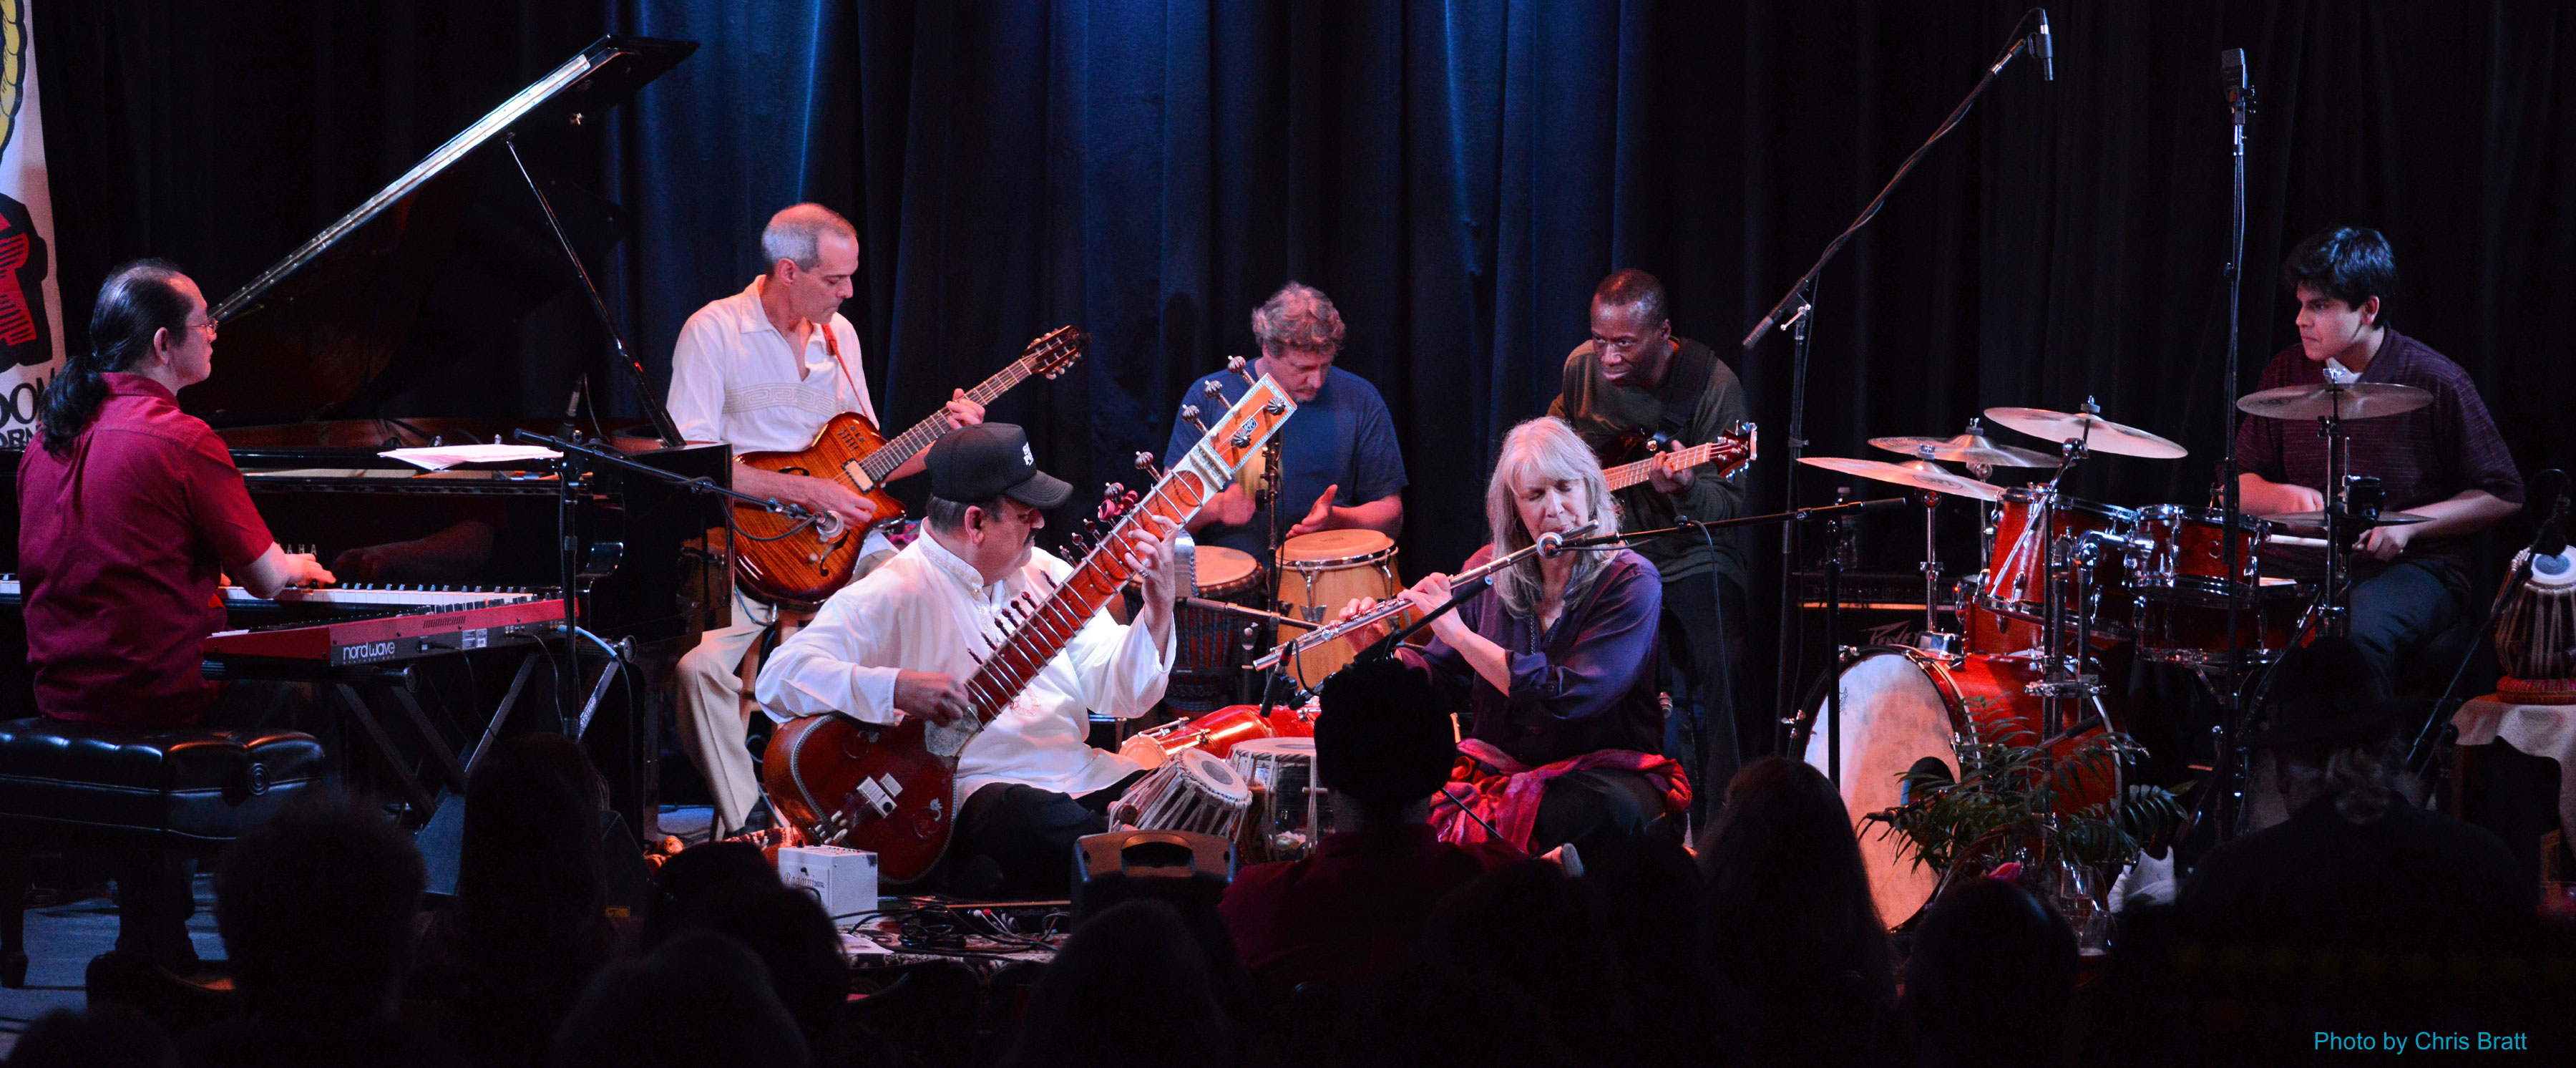 Sitar Power live at the Kuumbwa Jazz Center, Santa Cruz. All rights reserved. �12 Ashwin Batish. Copyrighted image. Photographer Chris Bratt